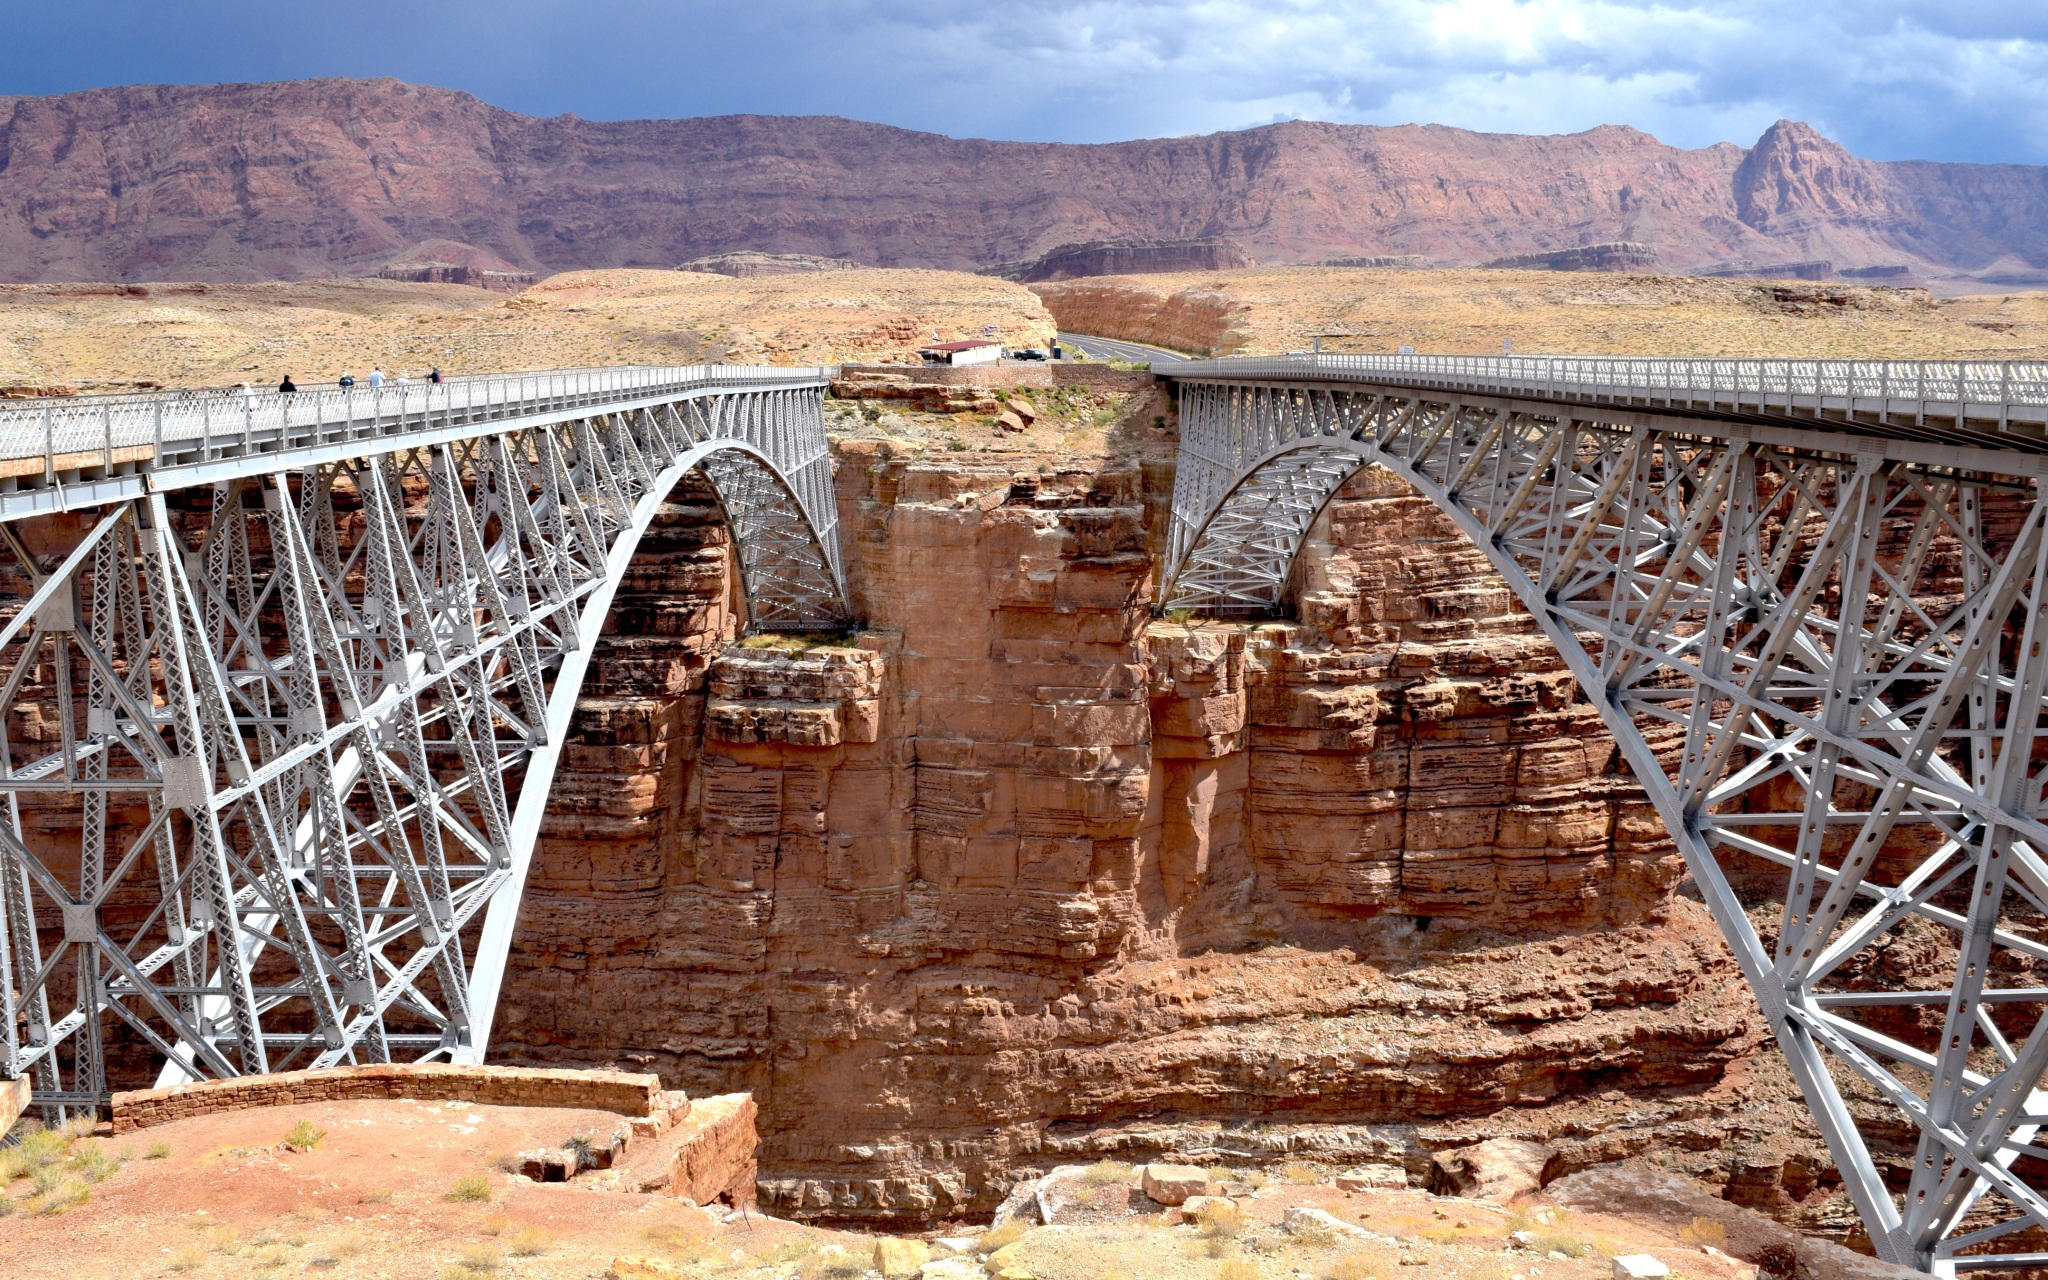 Scenic Route 89A Vermillion Cliffs Navajo Bridge Road Trip US Togetherintransit.nl